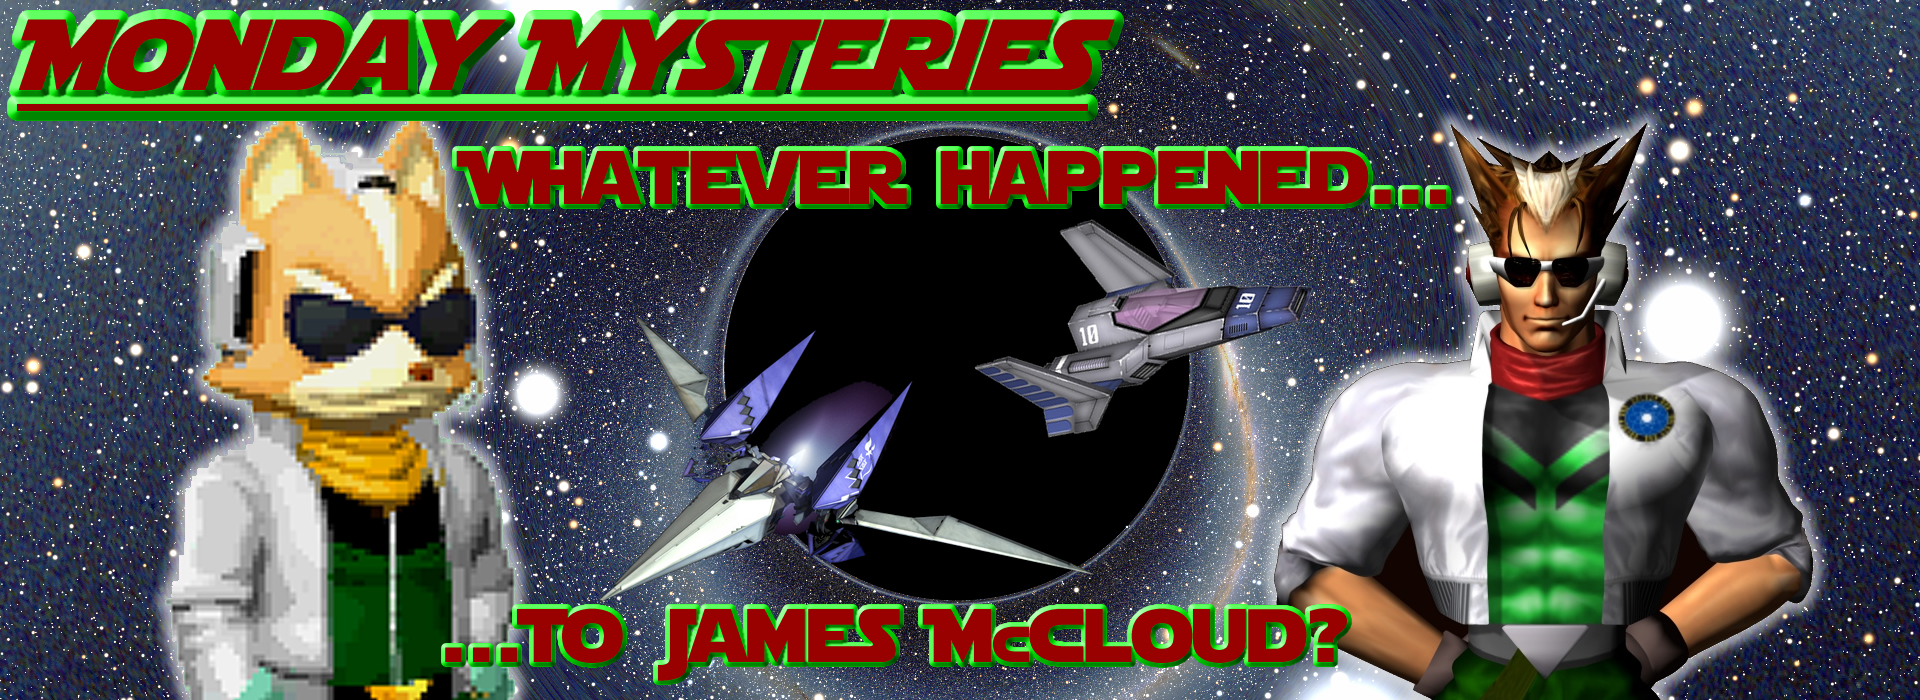 Monday Mysteries: Whatever Happened to James McCloud?